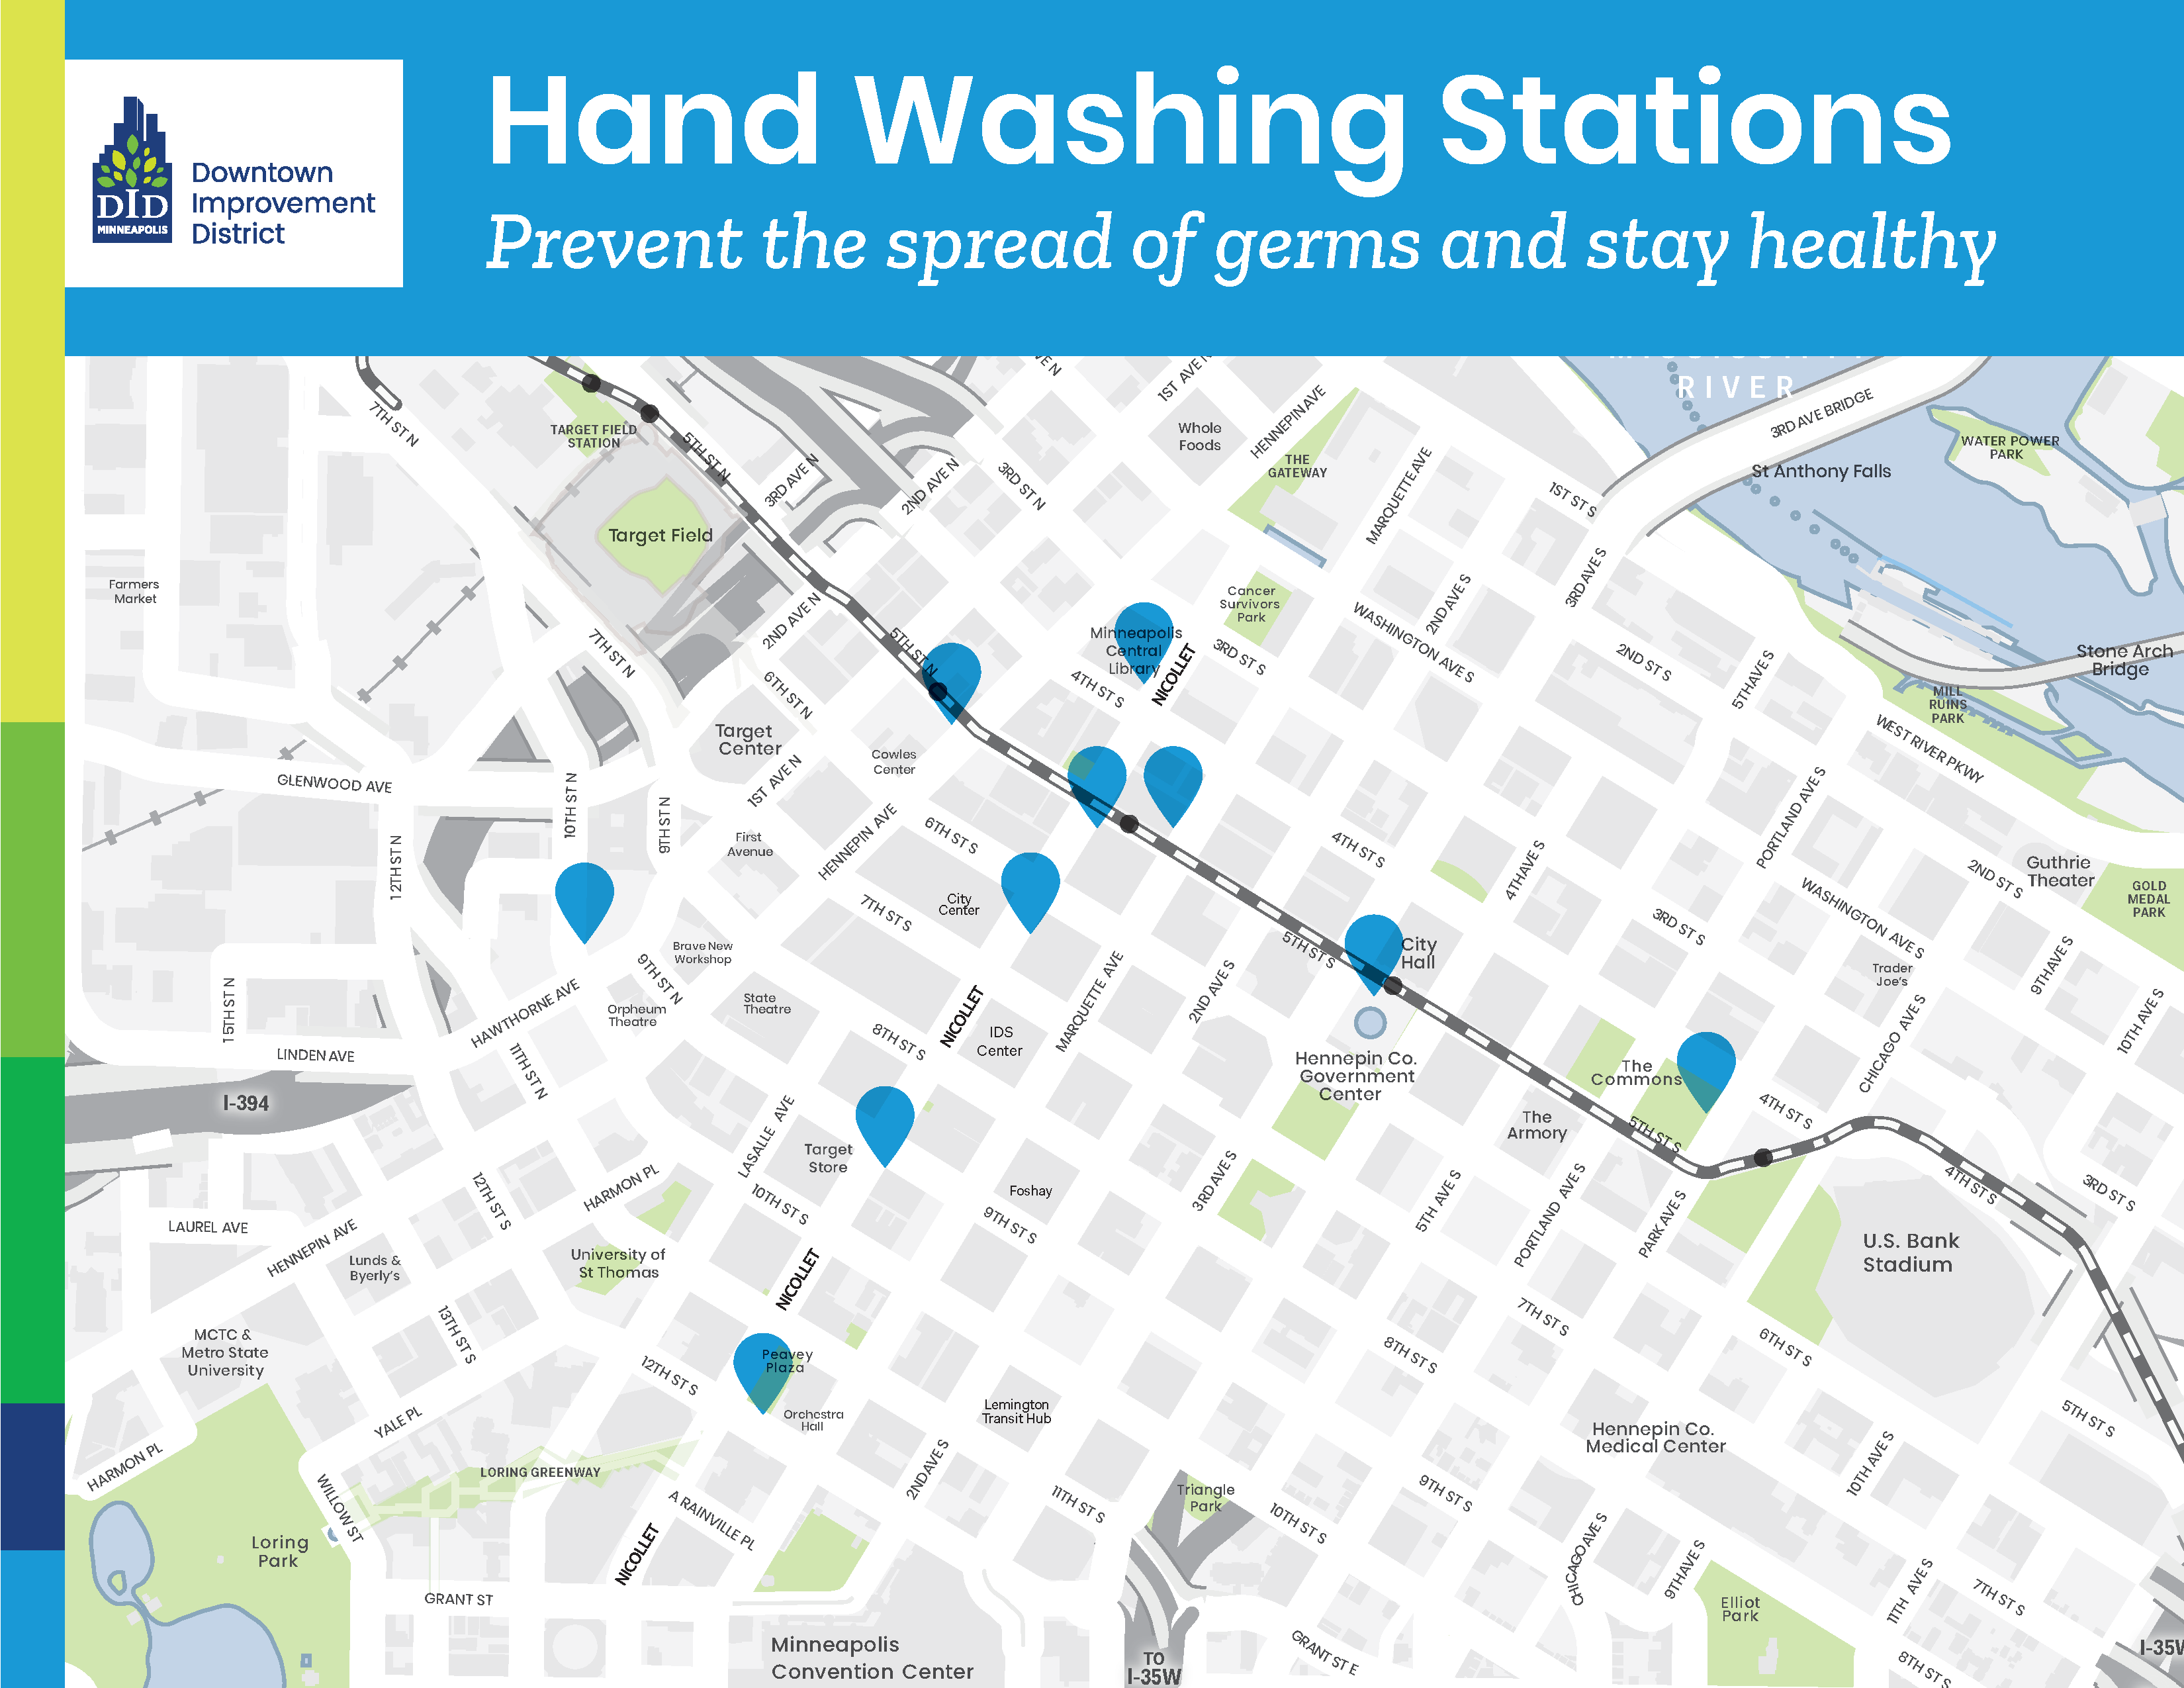 Mpls downtown improvement District Hand washing stations map 2020